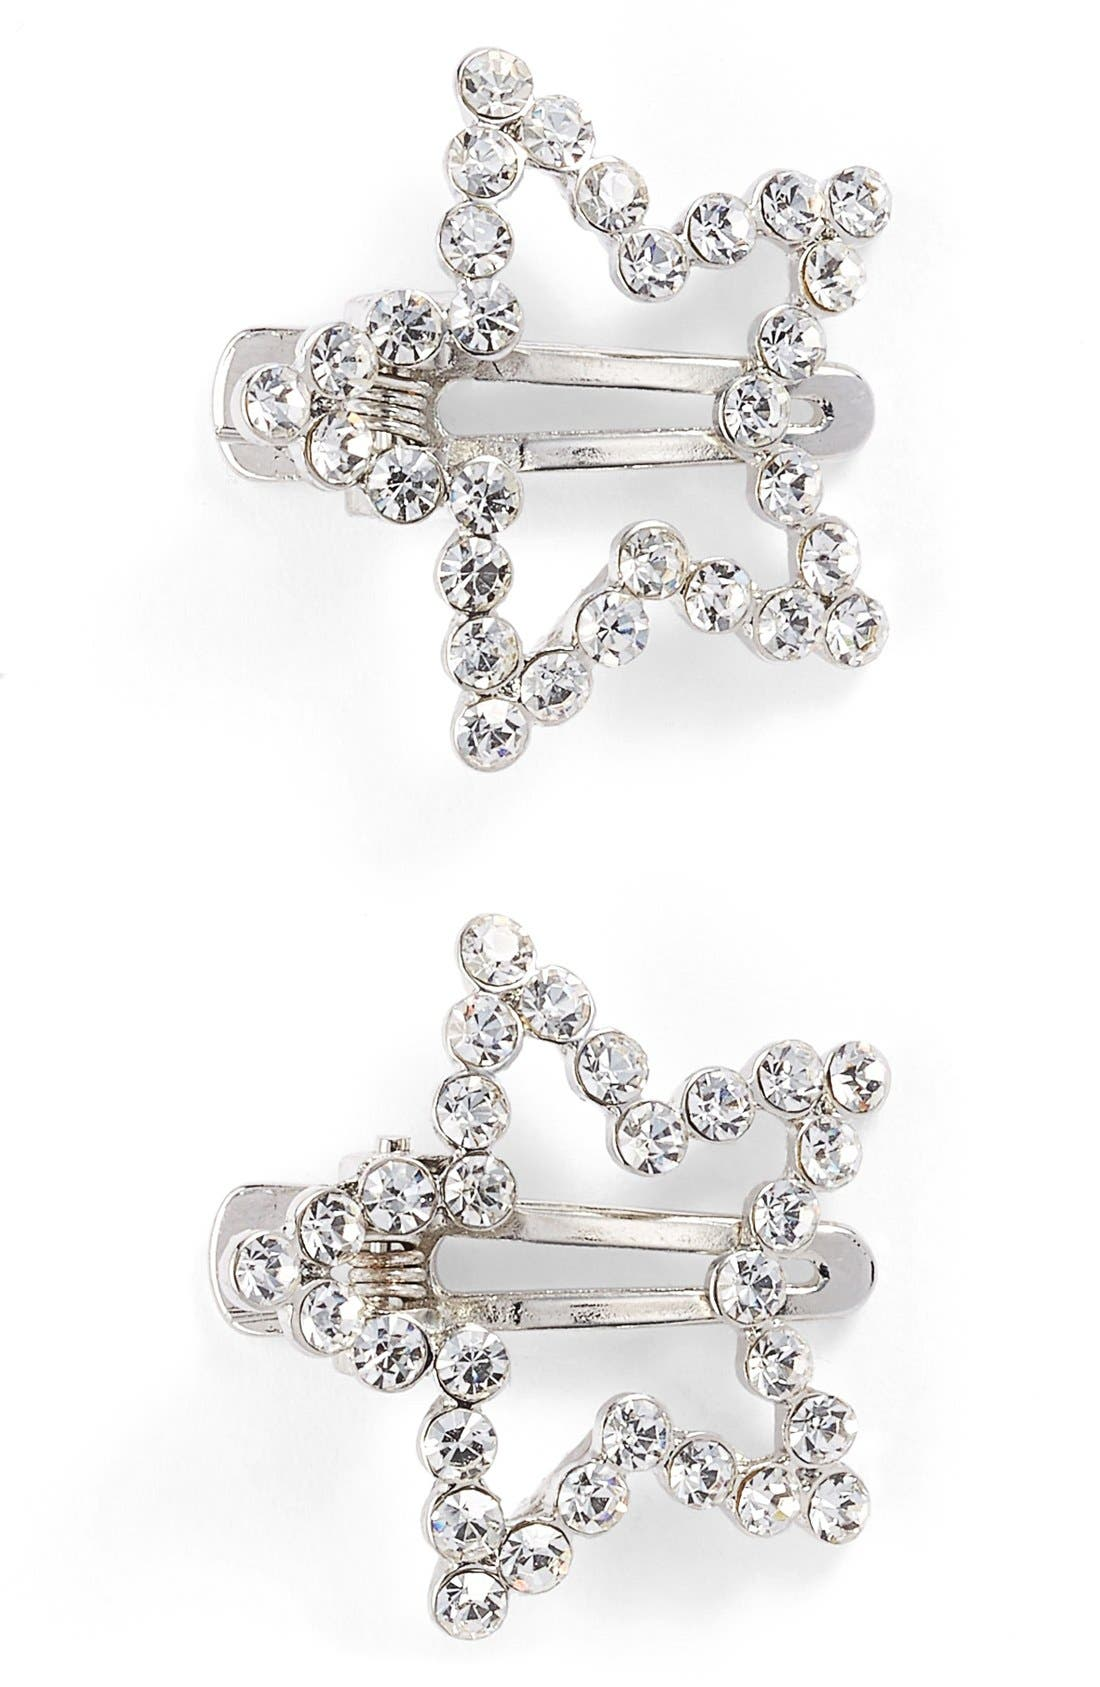 'Twinkle' Star Hair Clips,                             Main thumbnail 1, color,                             Silver